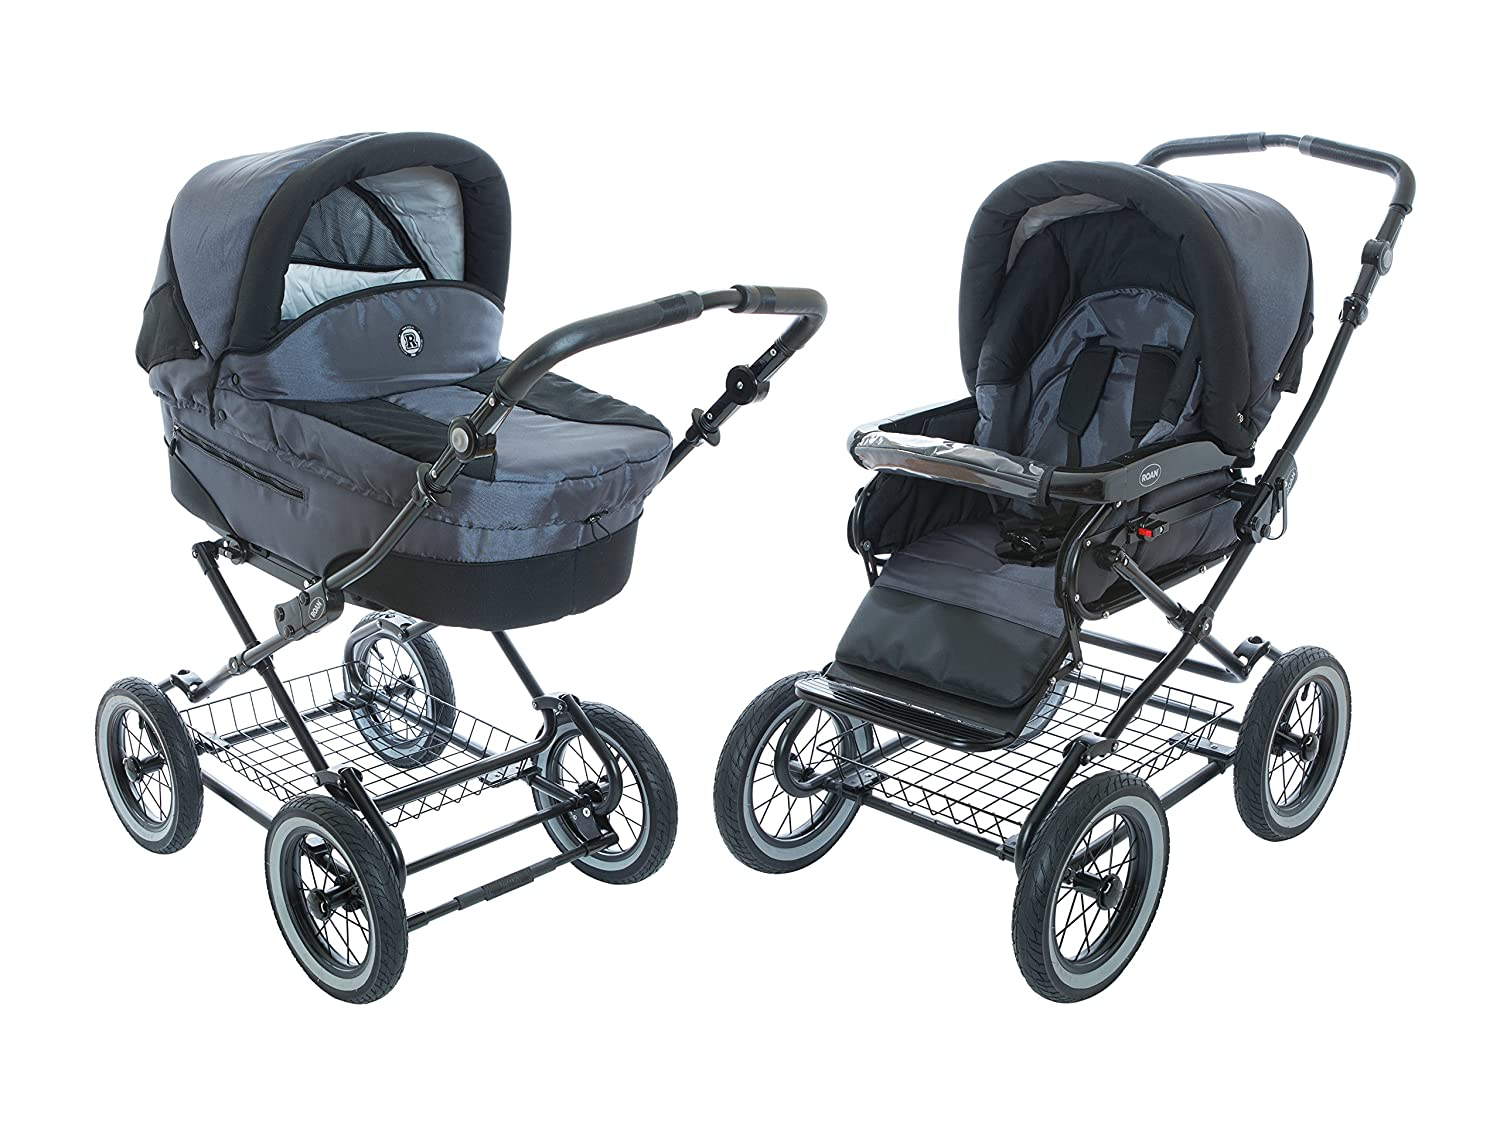 Amazoncom Roan Rocco Classic Pram Stroller In With Bassinet - What is a dealer invoice rocco online store